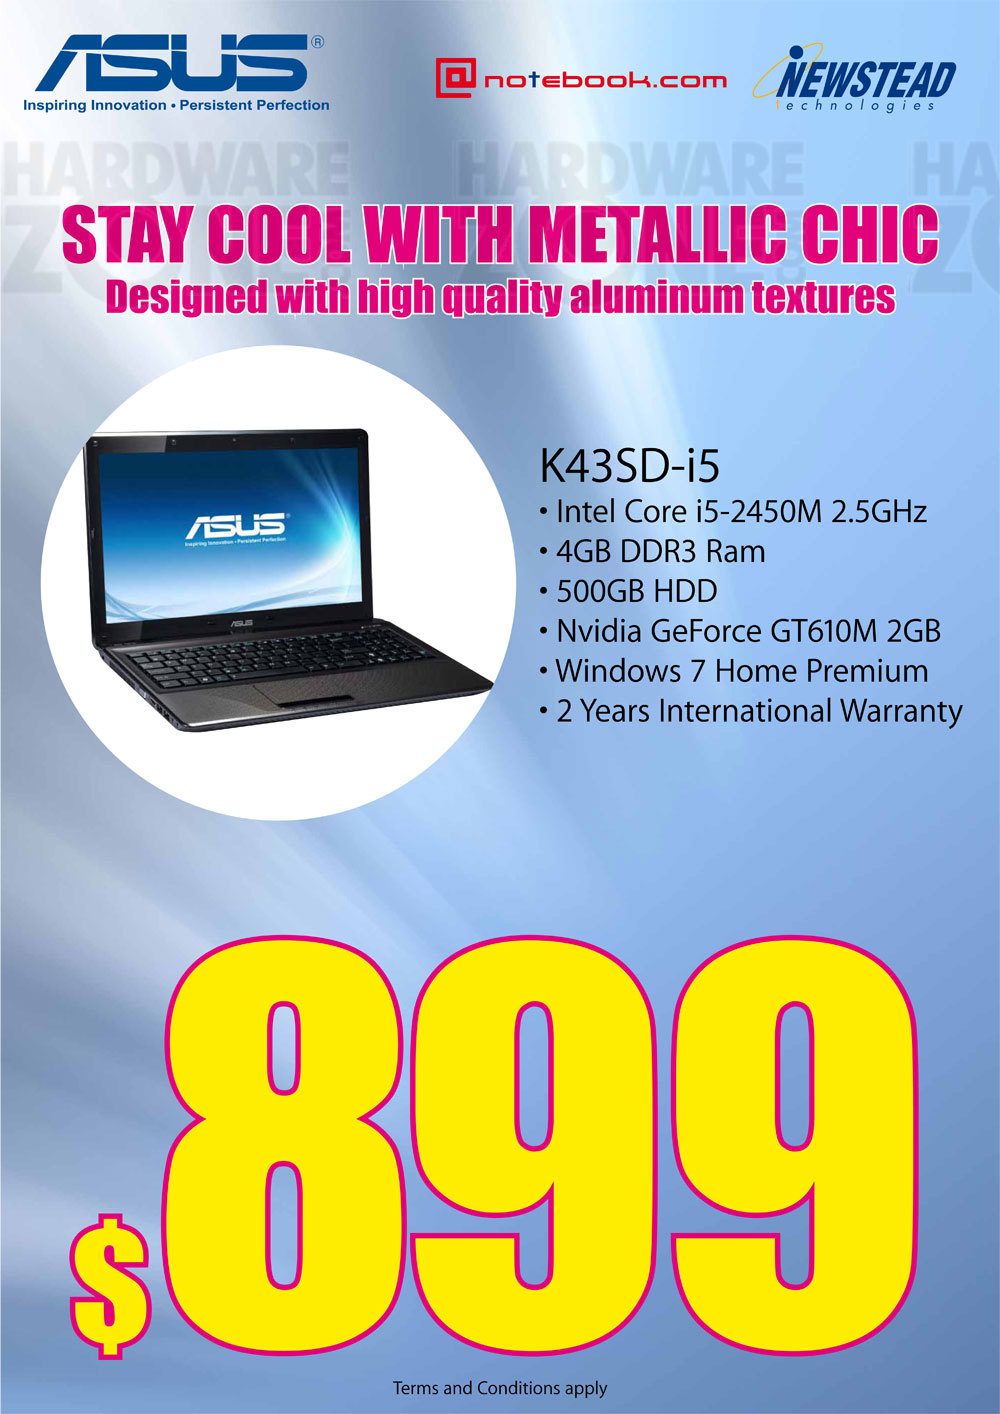 ASUS (Newstead) - Page 1